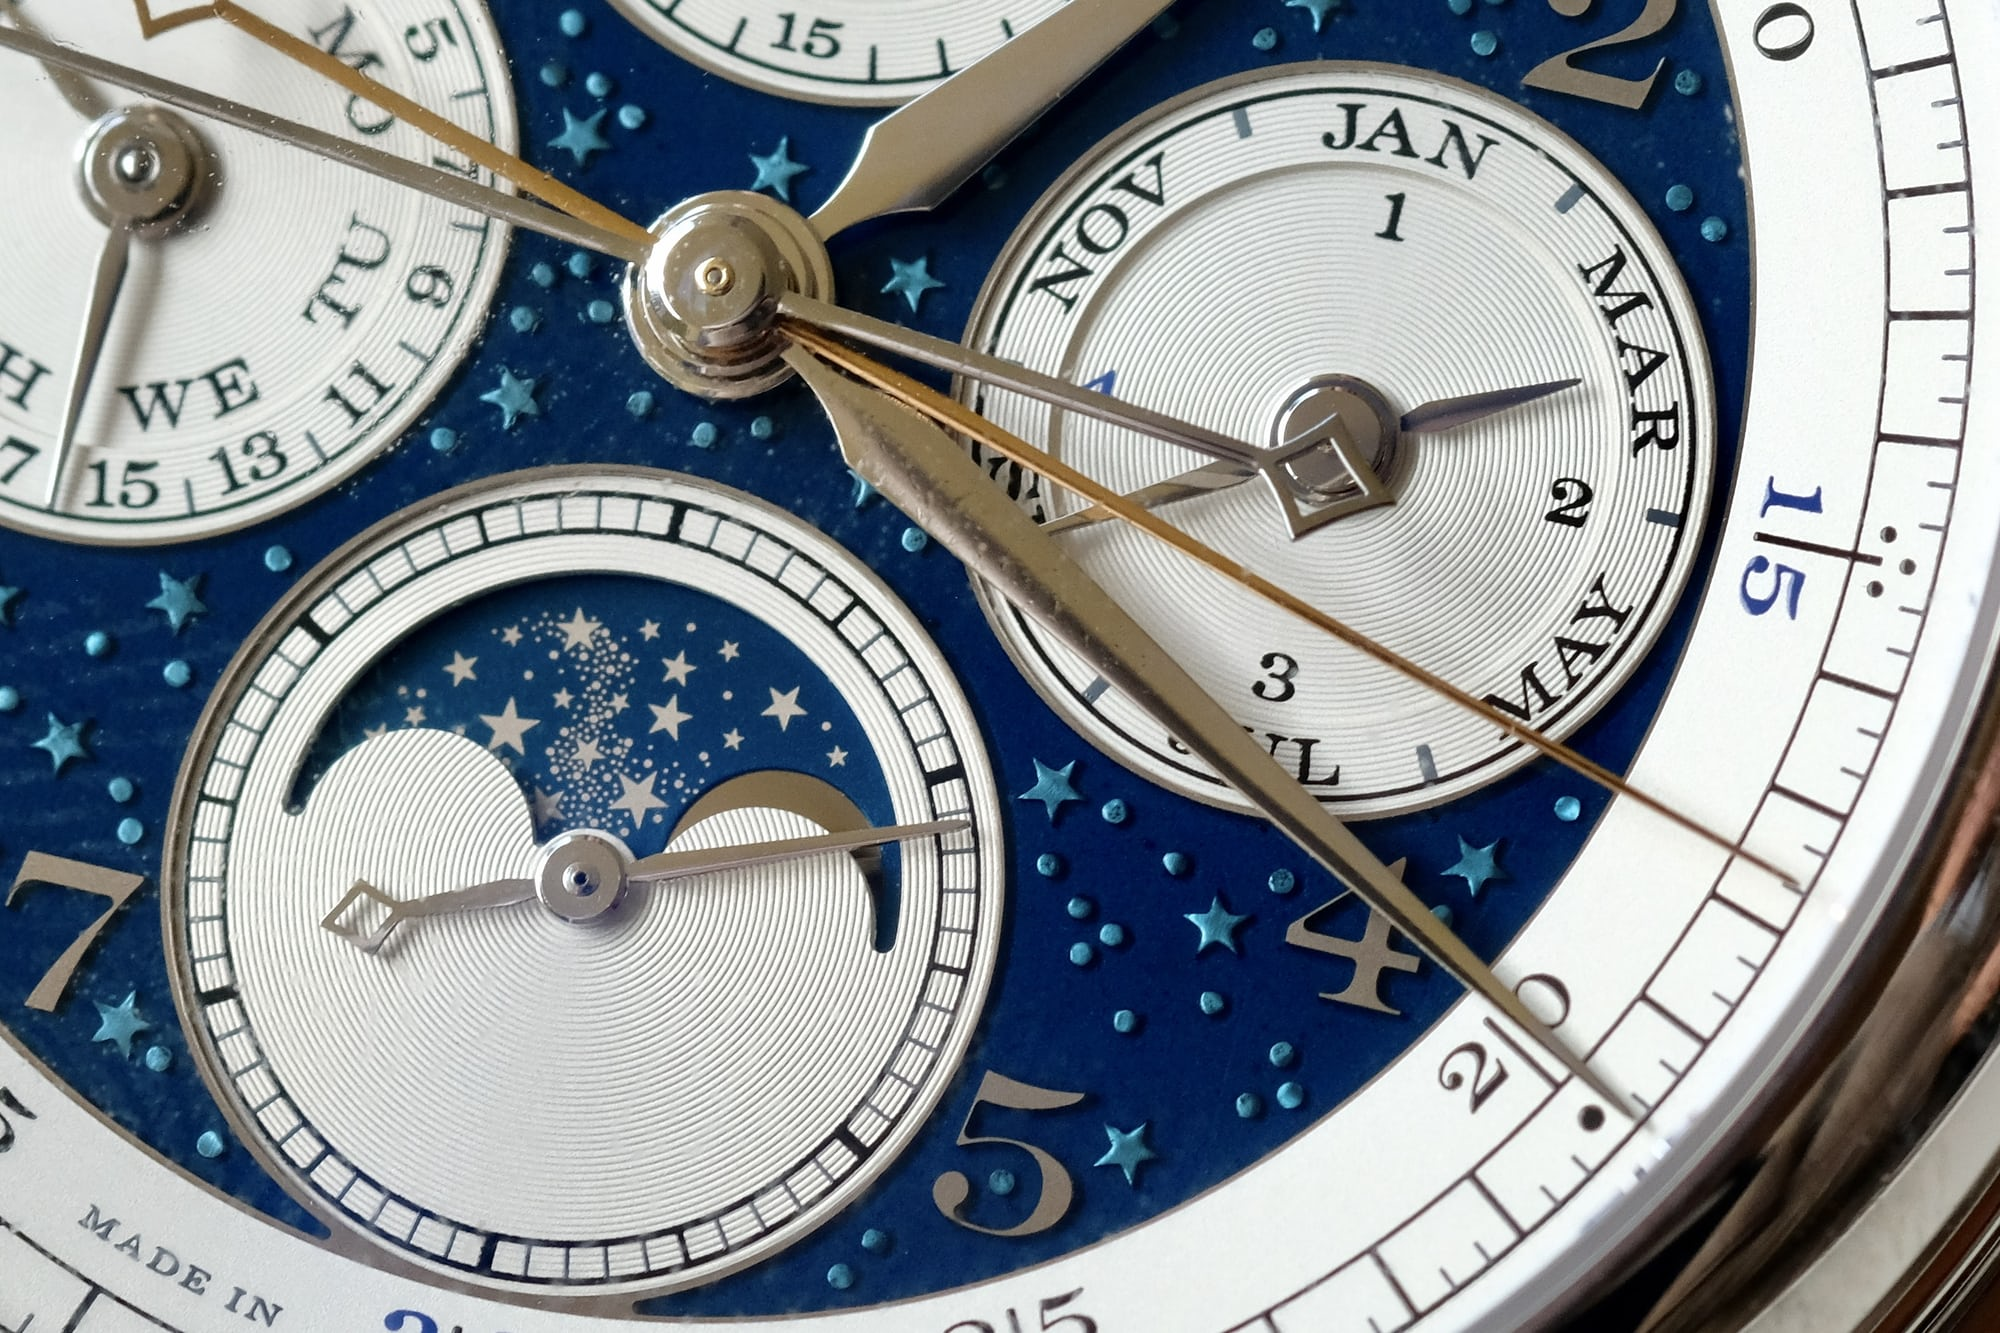 1815 Rattrapante Perpetual Calendar Handwerkskunst moonphase introducing: the a. lange & shne 1815 rattrapante perpetual calendar handwerkskunst (live pics & pricing) Introducing: The A. Lange & Shne 1815 Rattrapante Perpetual Calendar Handwerkskunst (Live Pics & Pricing) IMG 2474